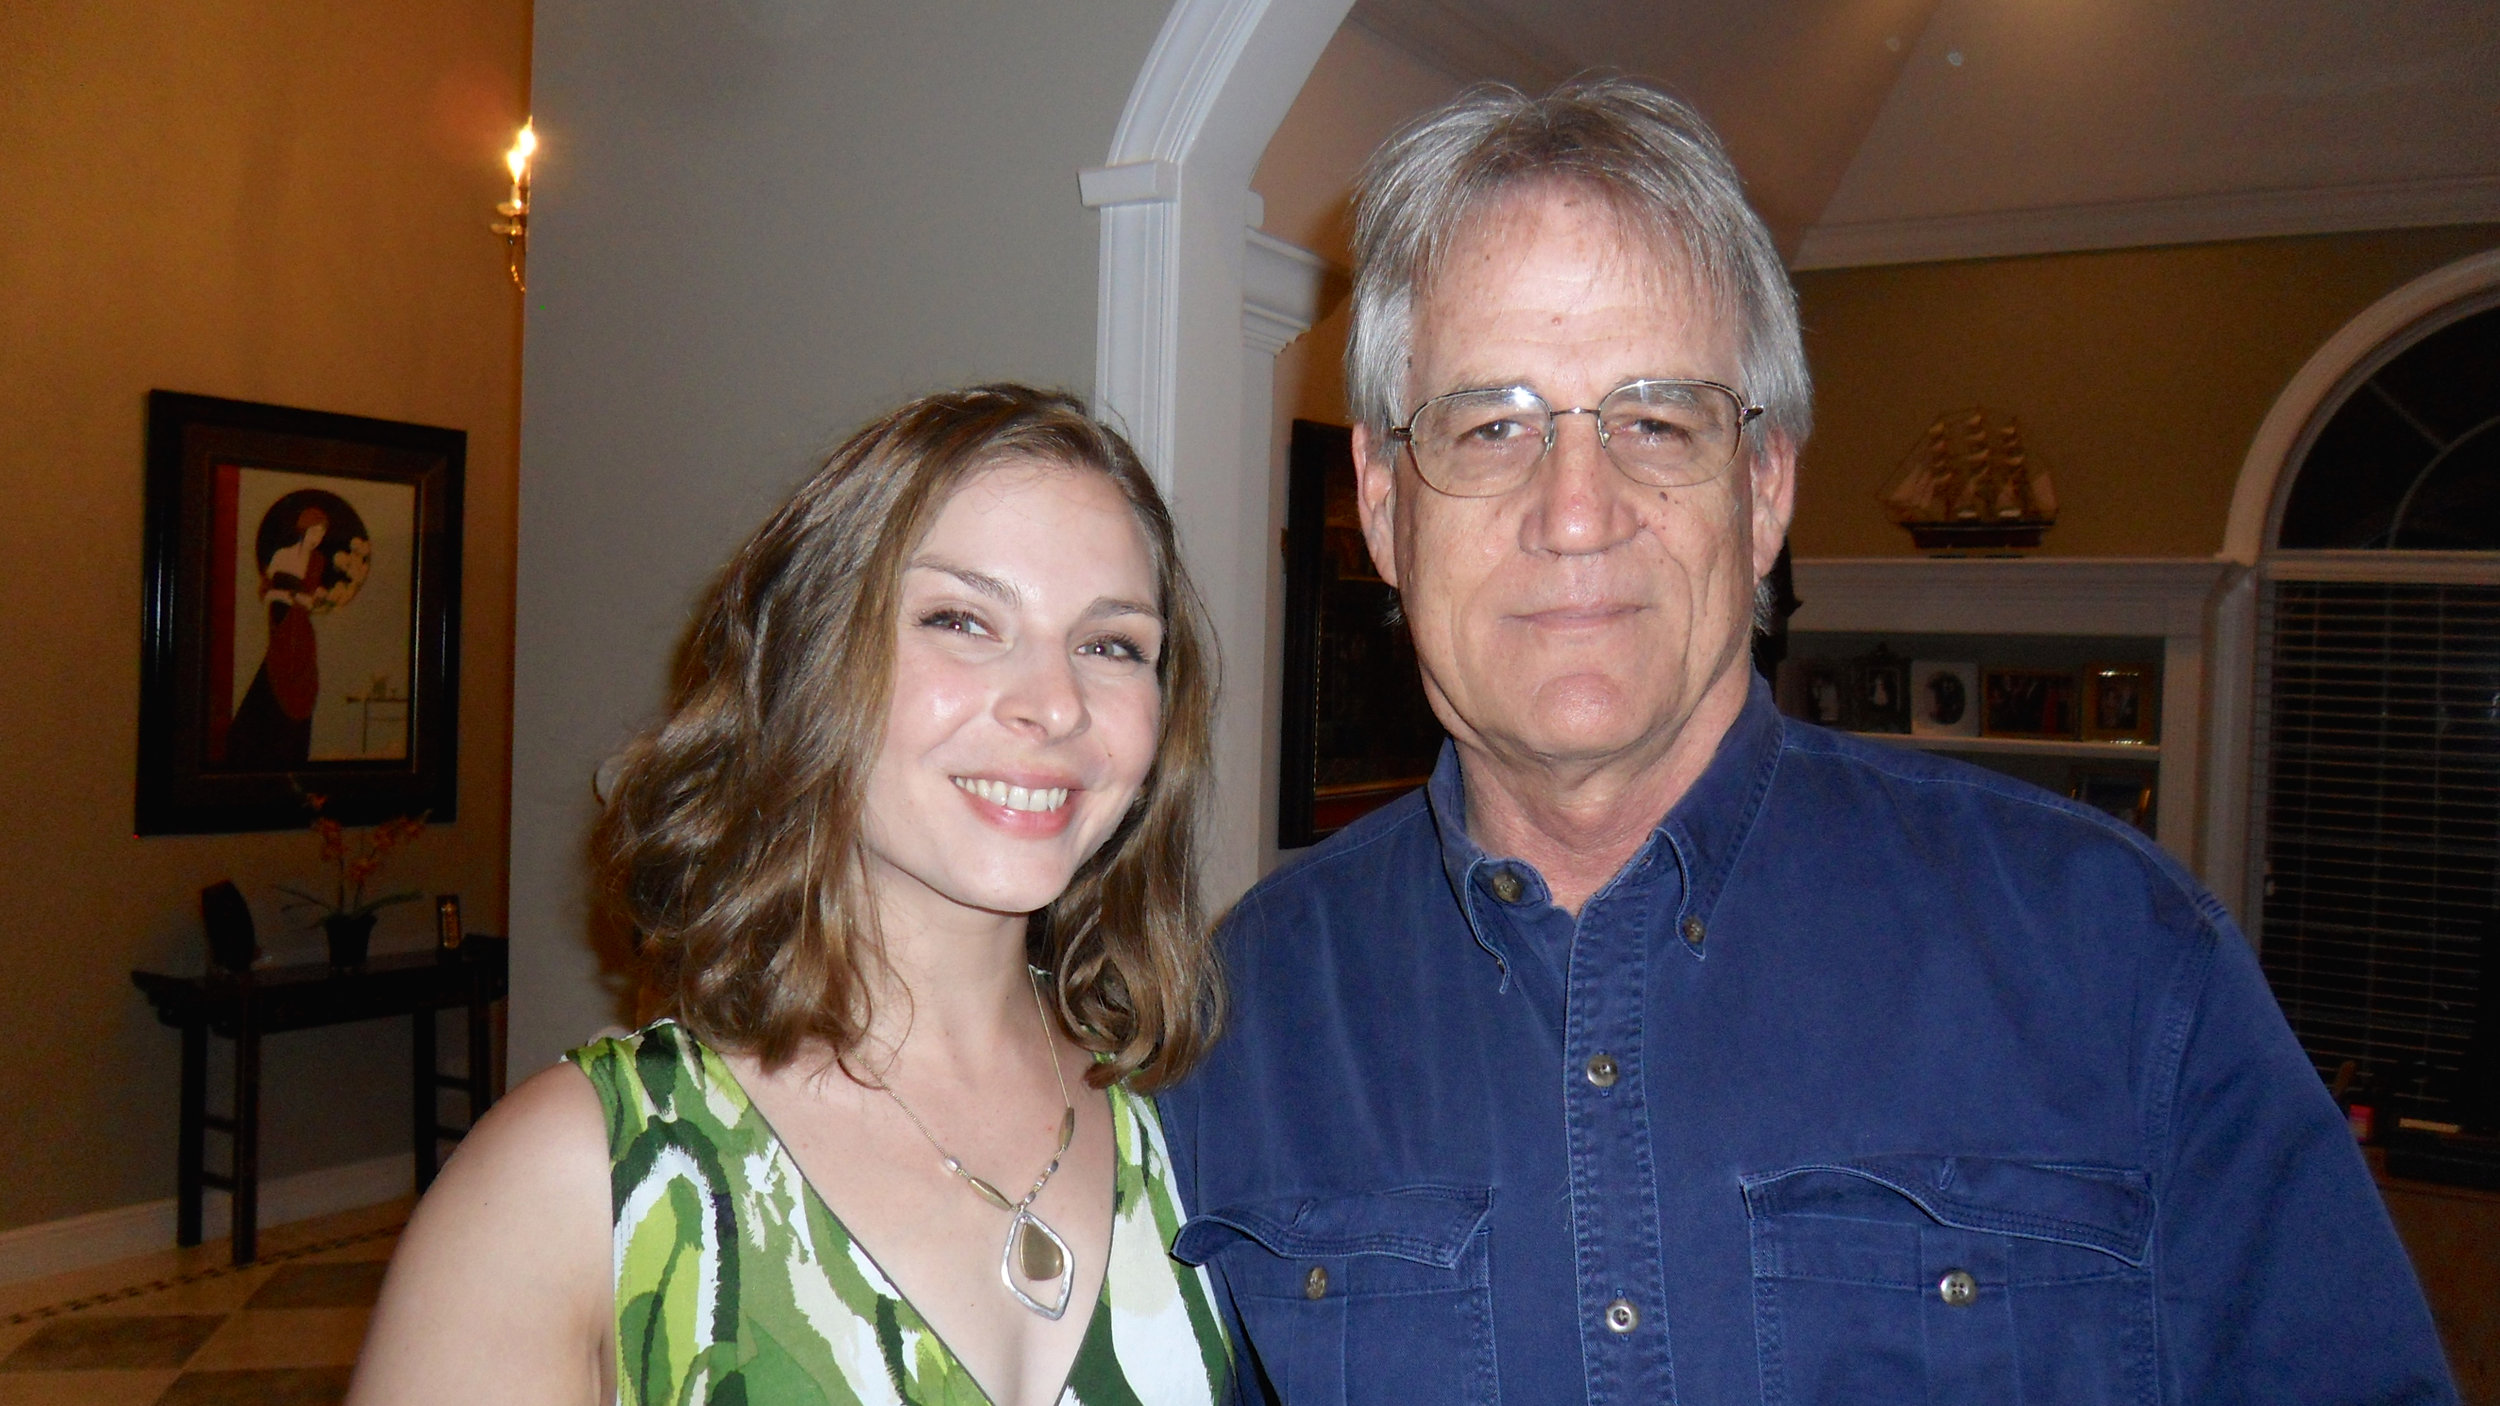 With our director, Allen Cornell.